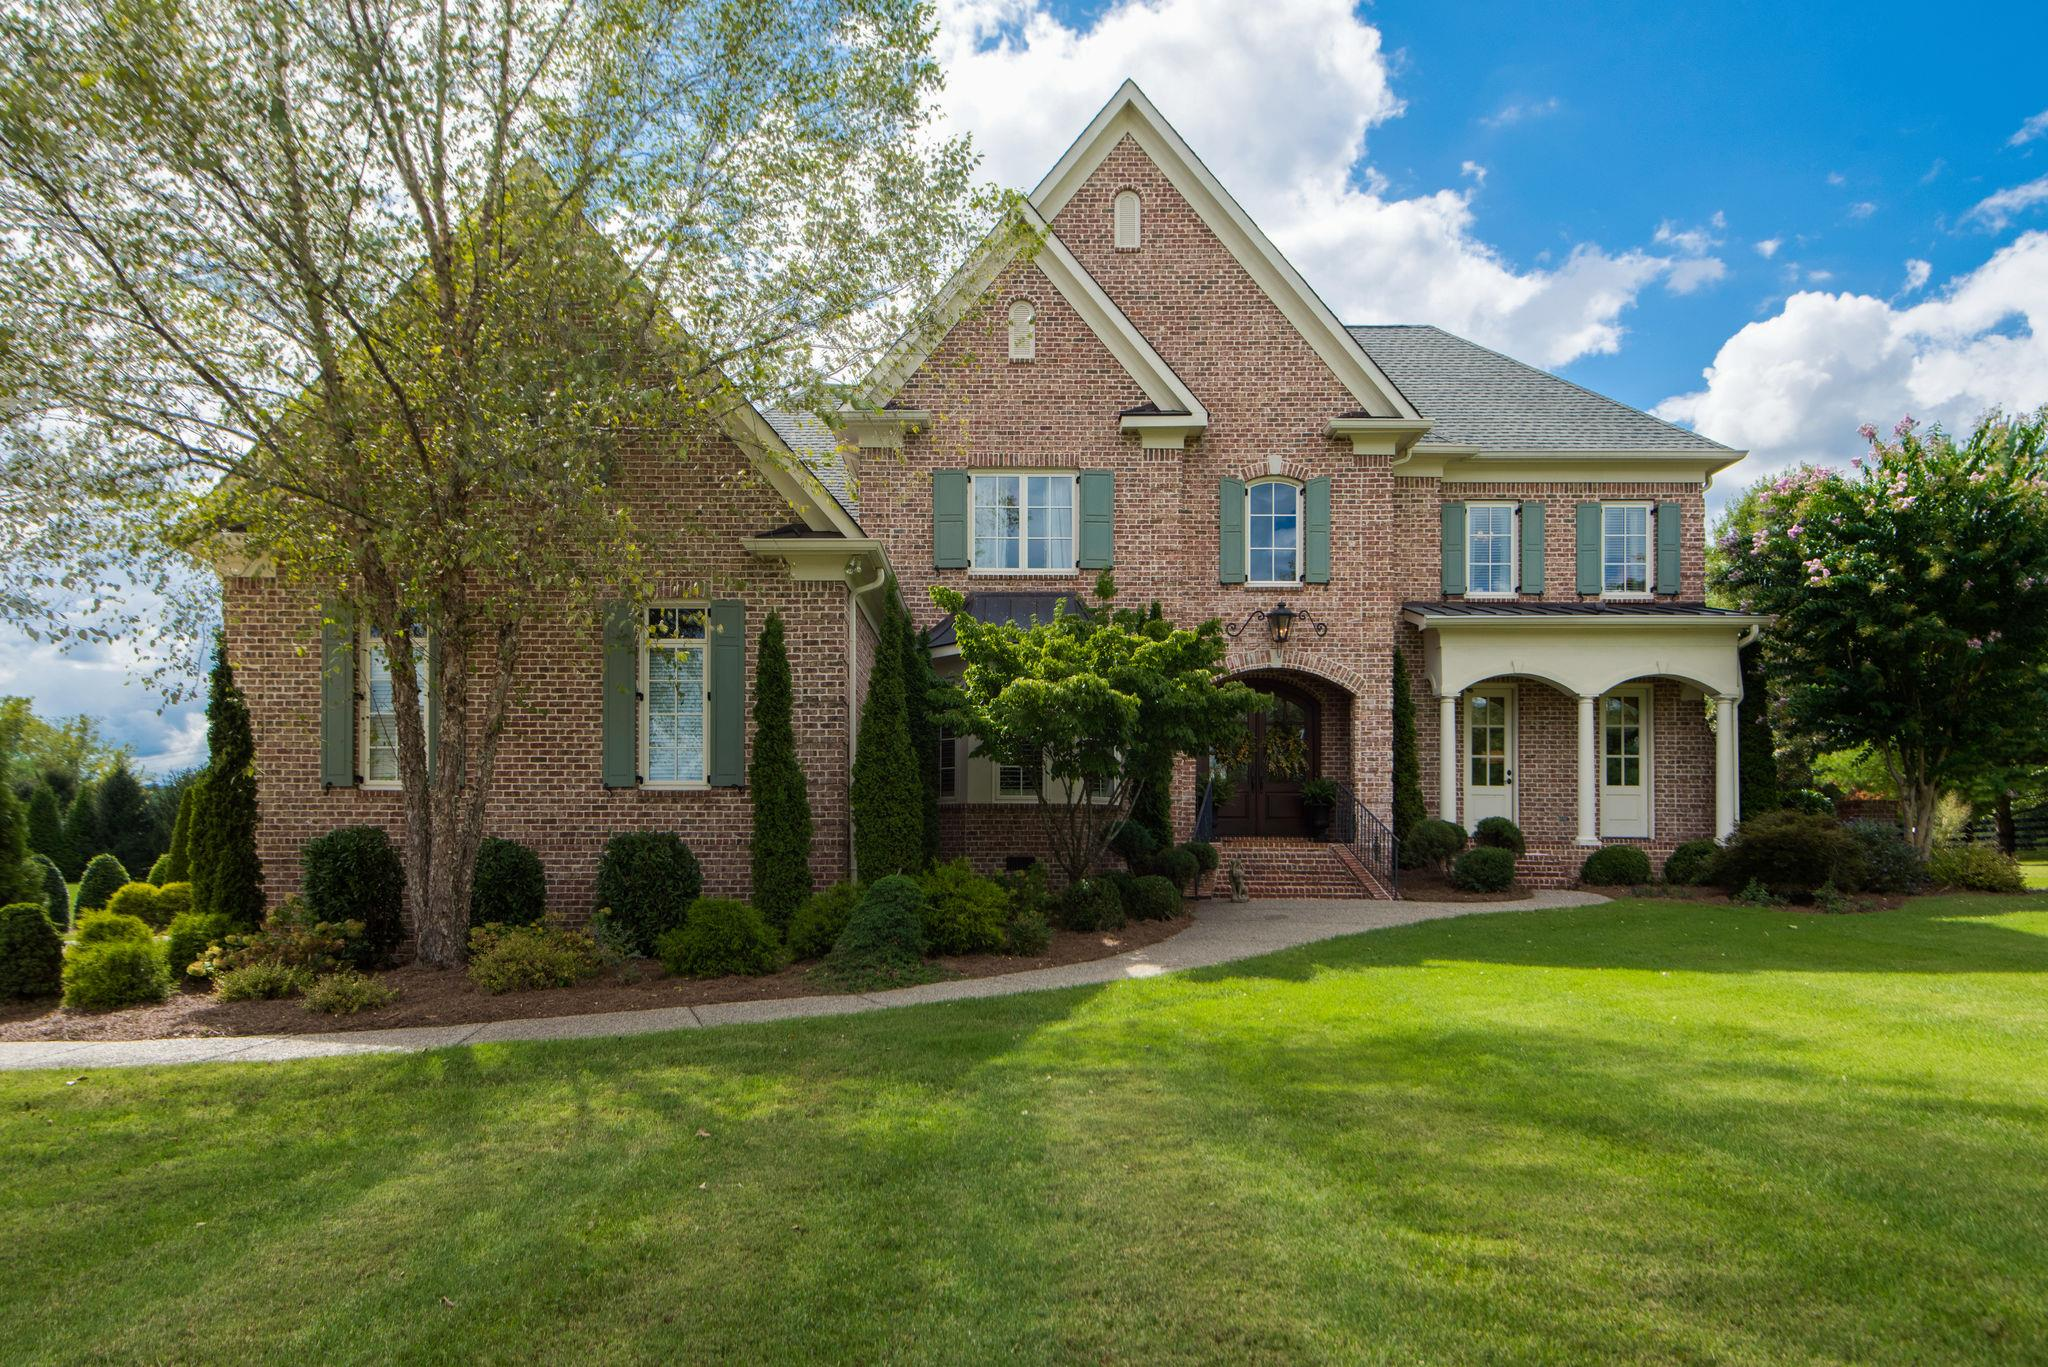 rosemont homes franklin tennessee